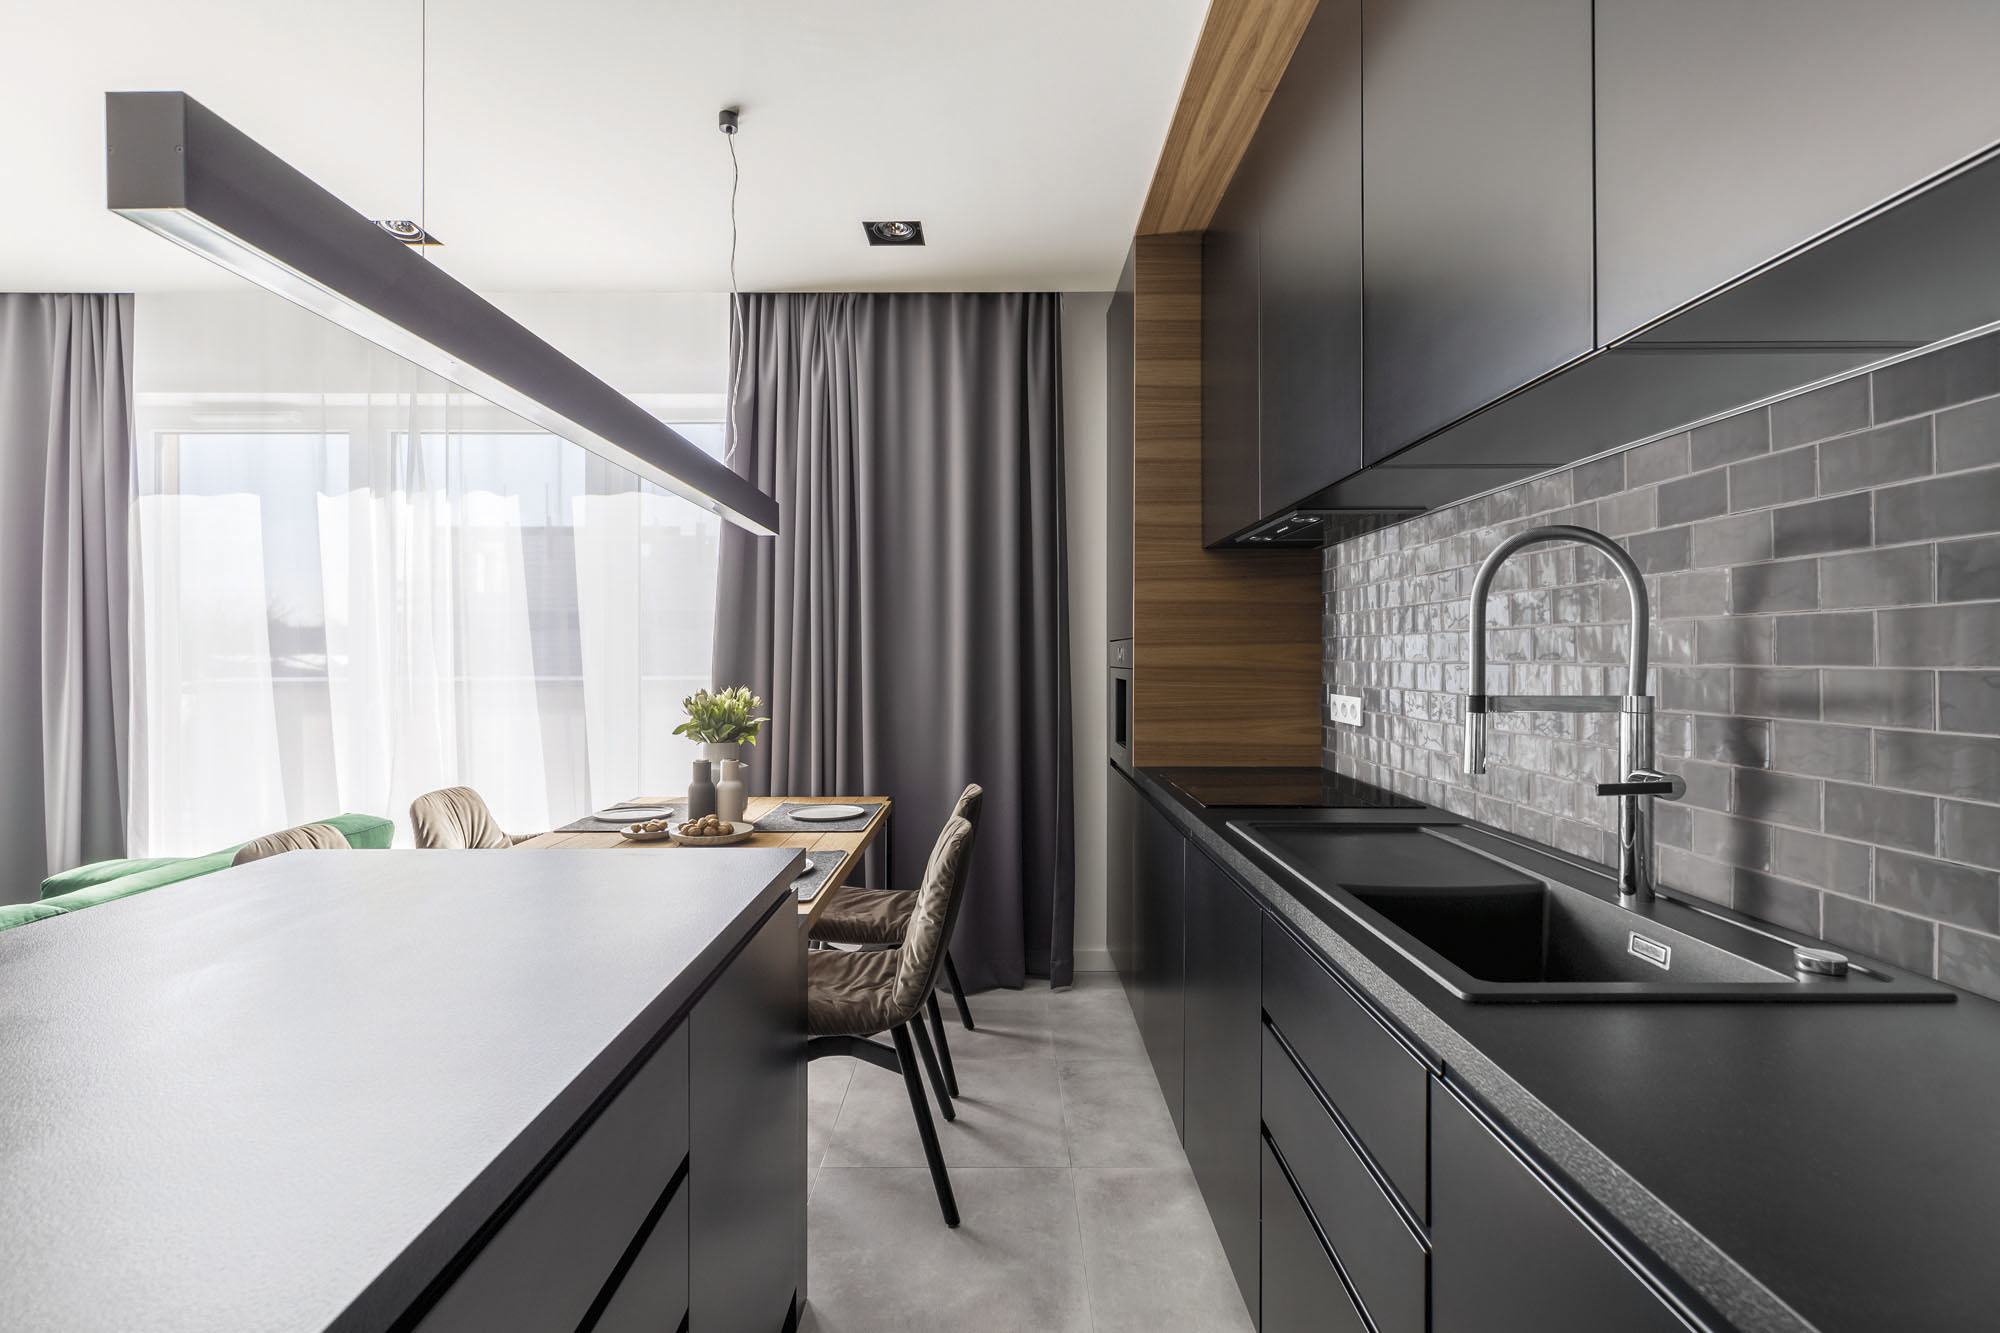 Kitchen interior with black cabinets